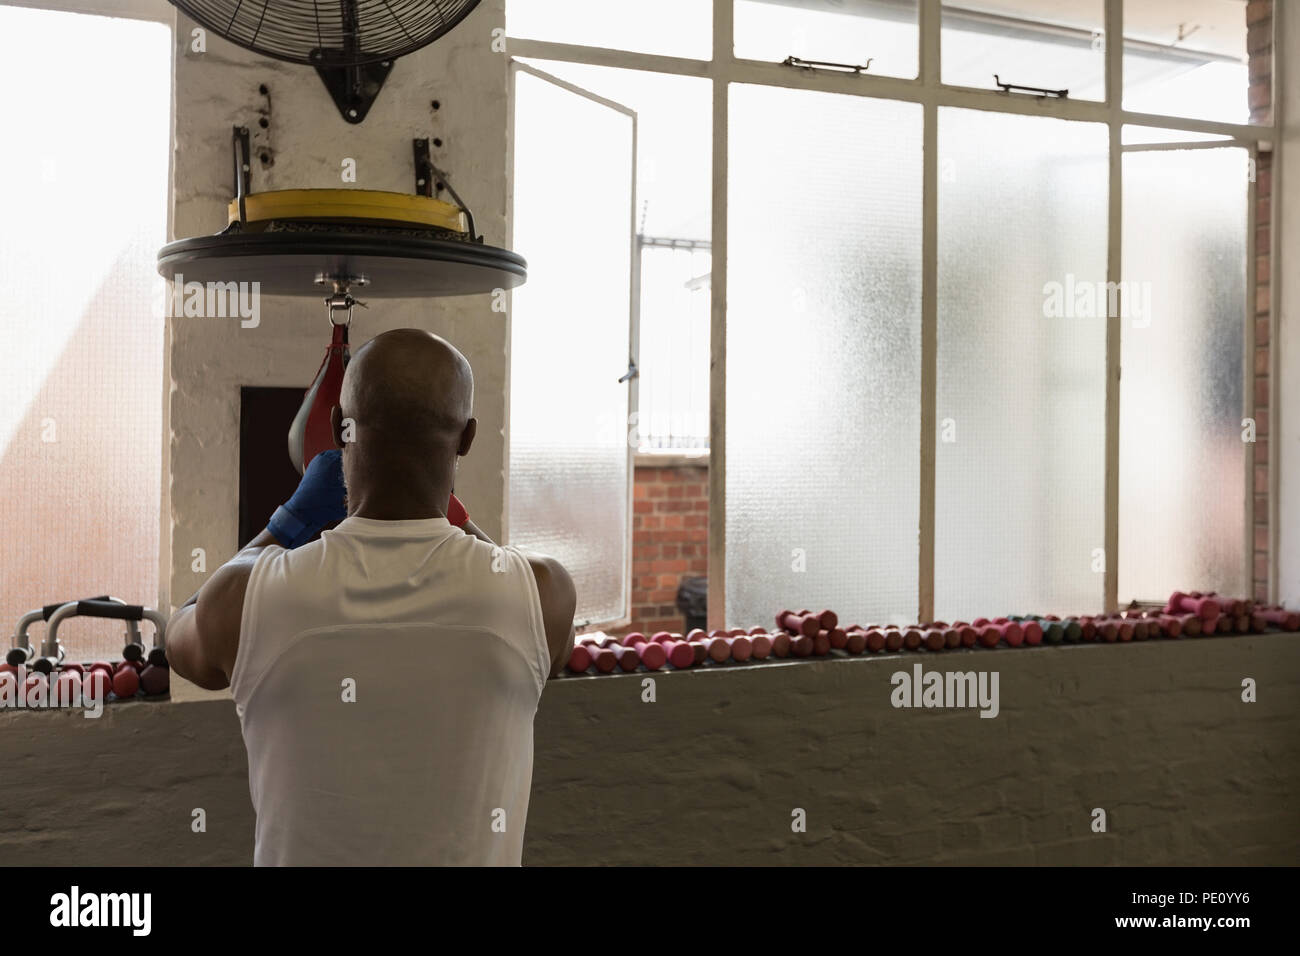 Man punching the speed bag in the fitness studio - Stock Image